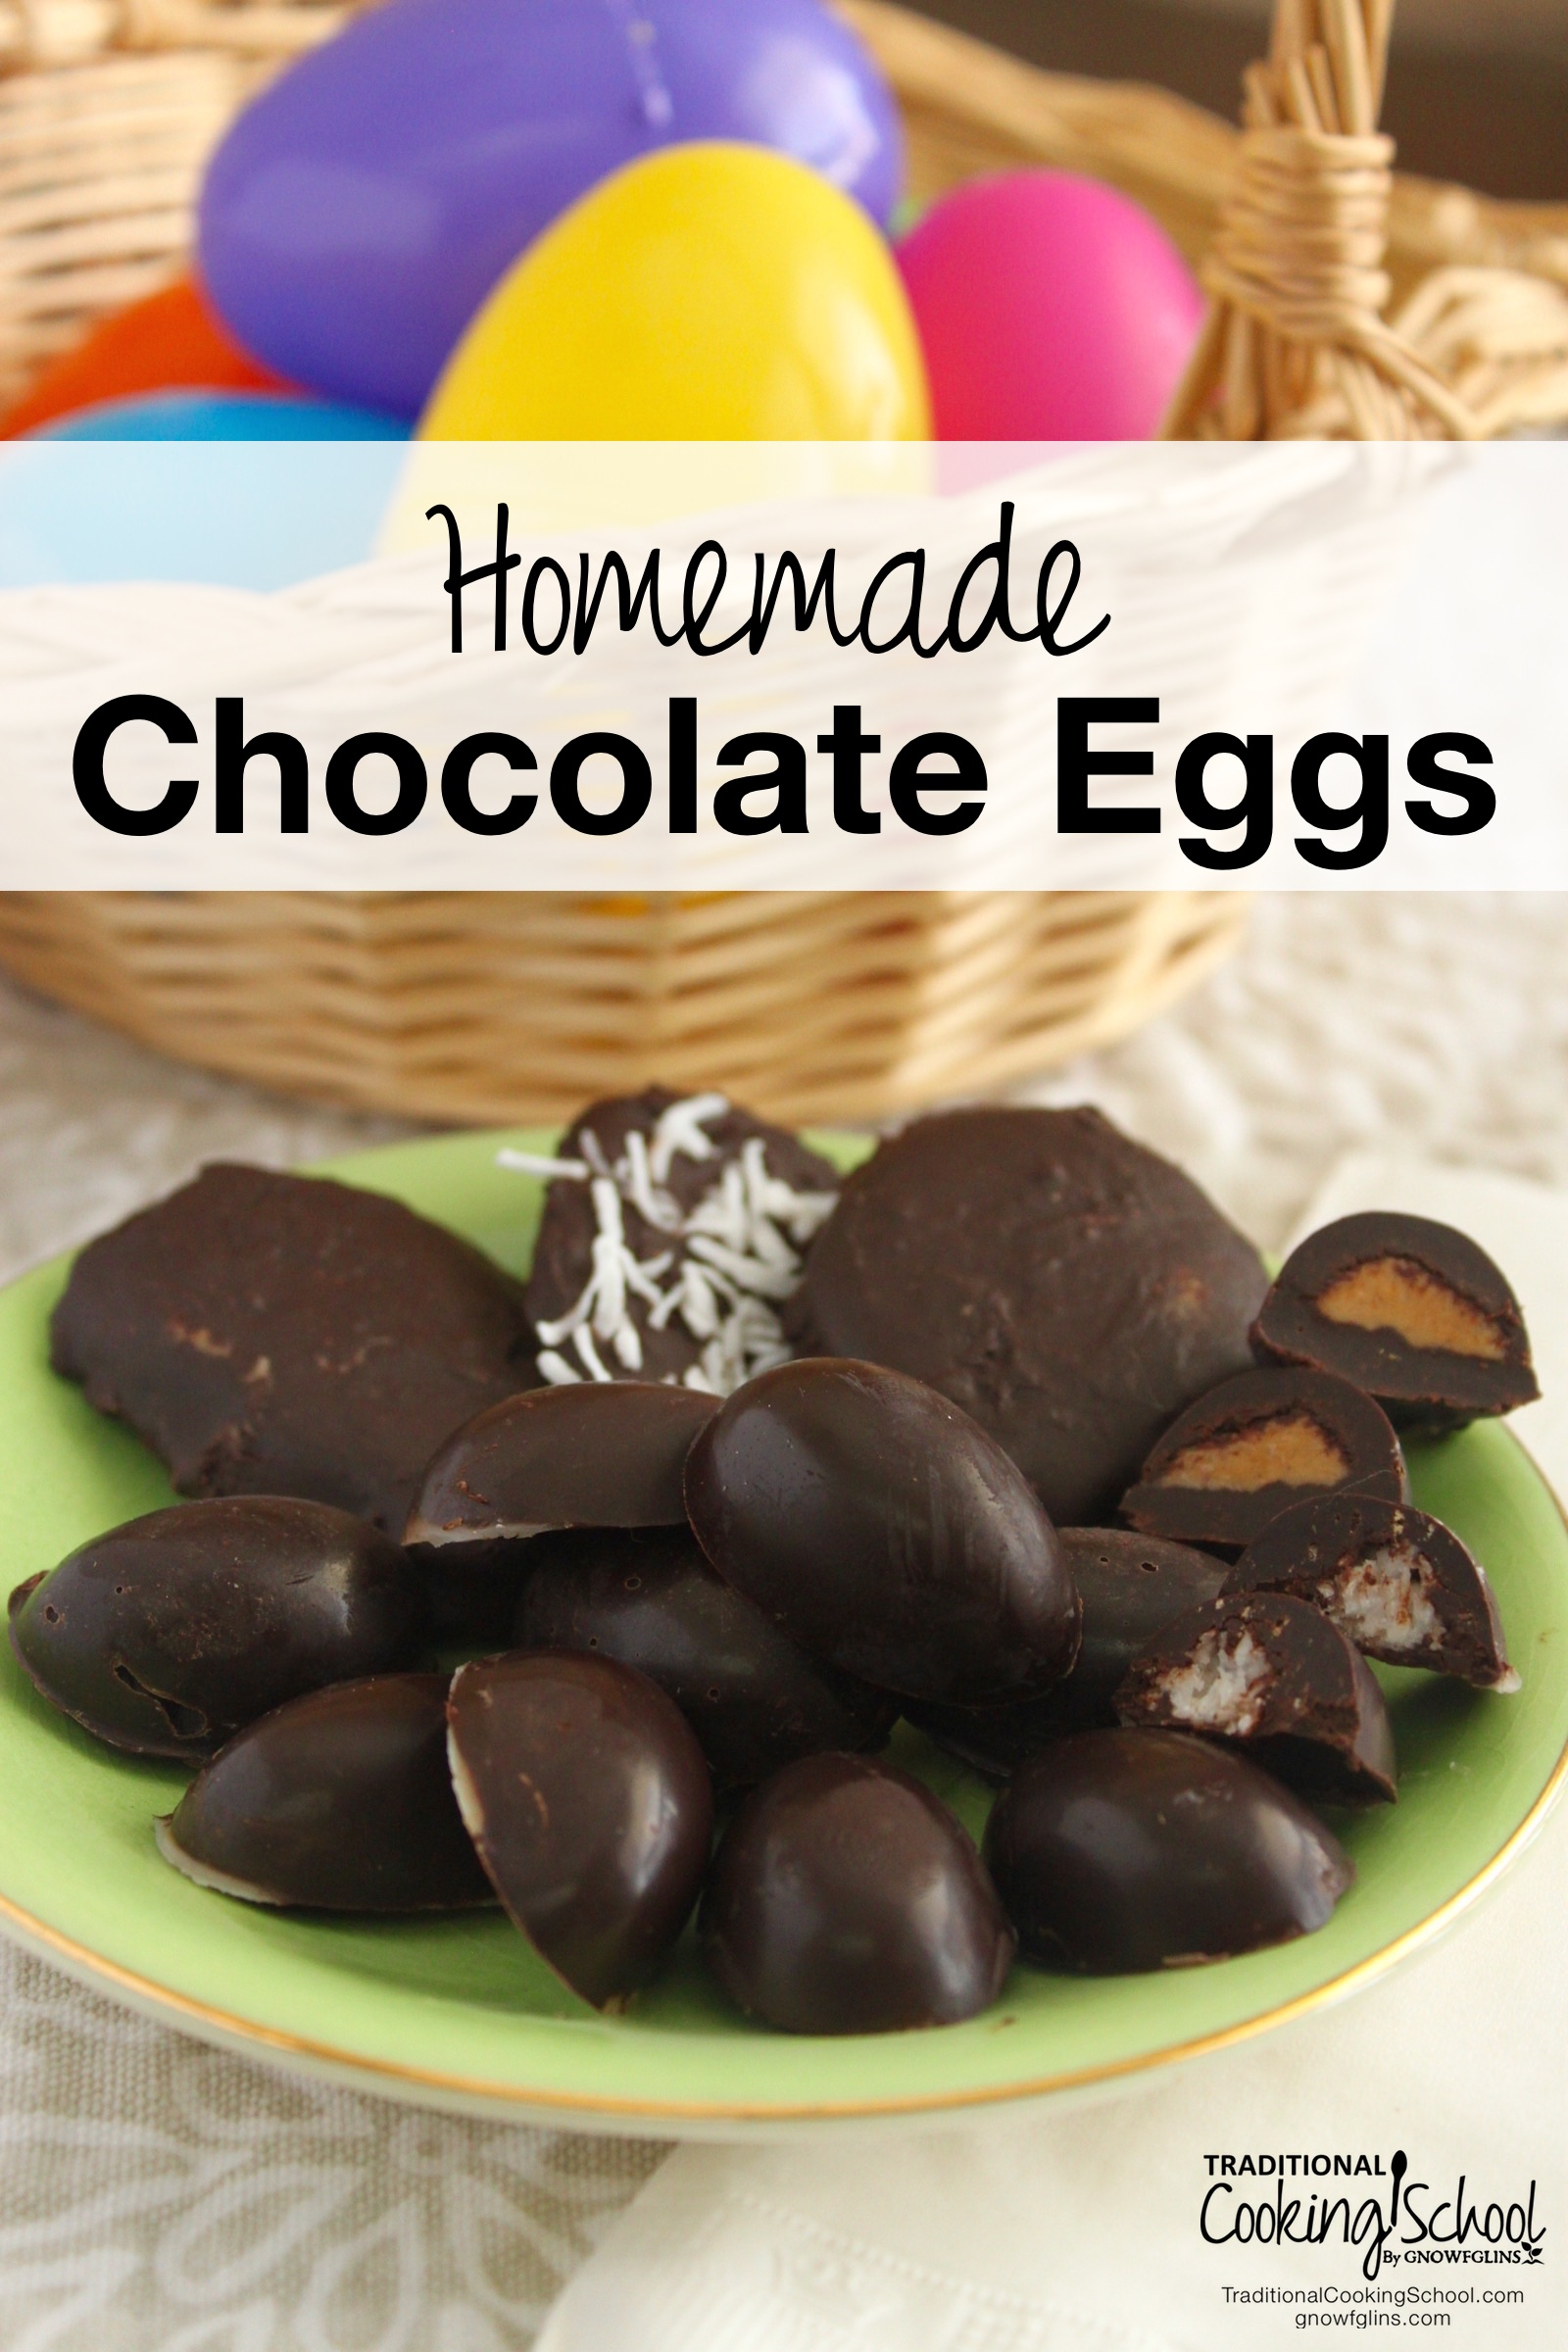 Homemade Chocolate Eggs | Easter and chocolate go hand-in-hand, right? You don't have to be a chocolatier to make delicious chocolate eggs at home. With just a few simple ingredients, you can whip up a batch in just 30 minutes. Make them rich and dark, or fill them with peanut butter or coconut. They can also be made with or without a chocolate mold. Even your kids can help! | TraditionalCookingSchool.com